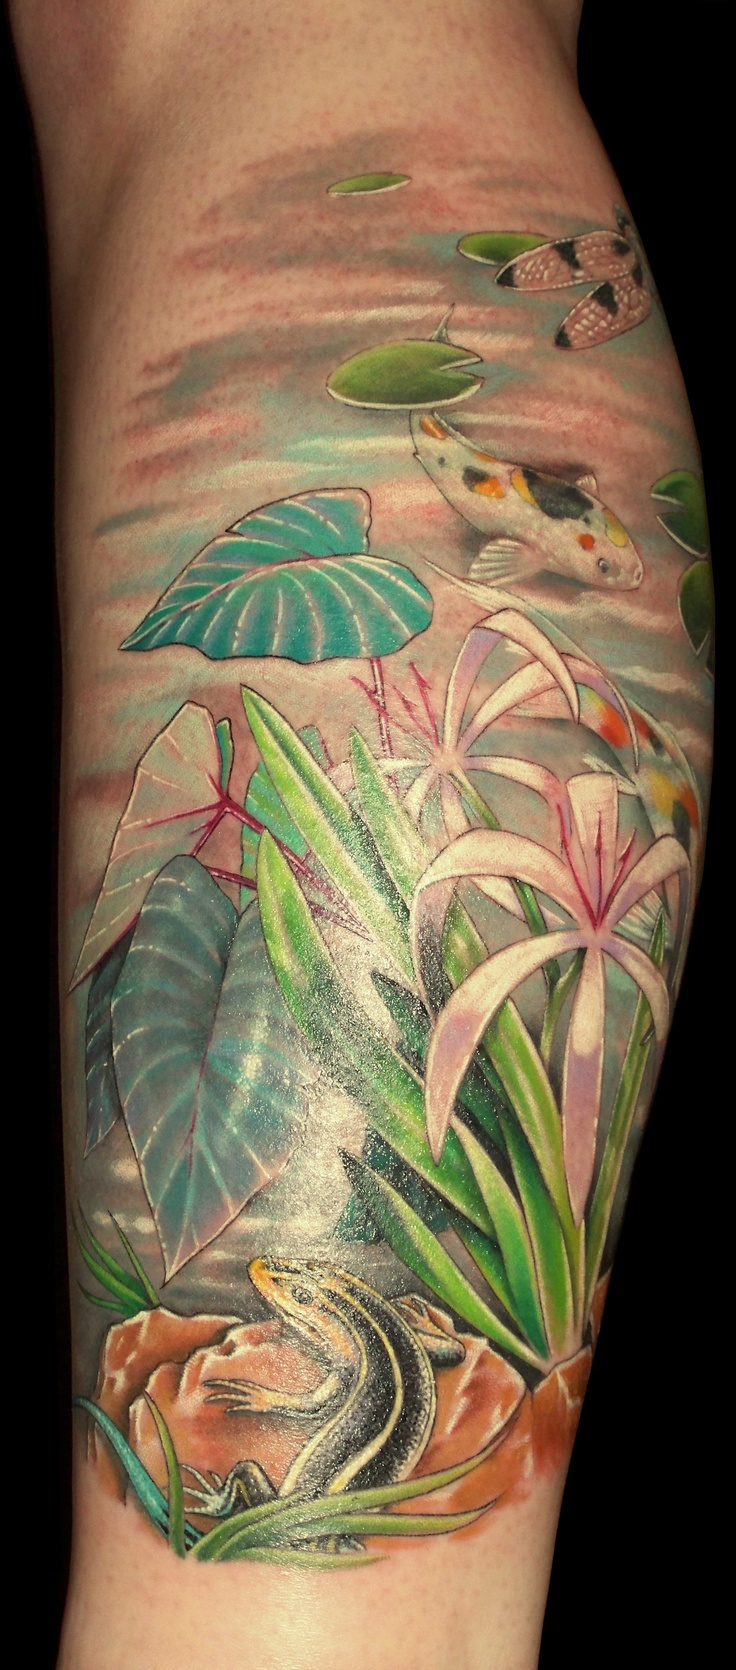 17 best tattoos images on pinterest tatoos tattoo ideas for Koi pond tattoo